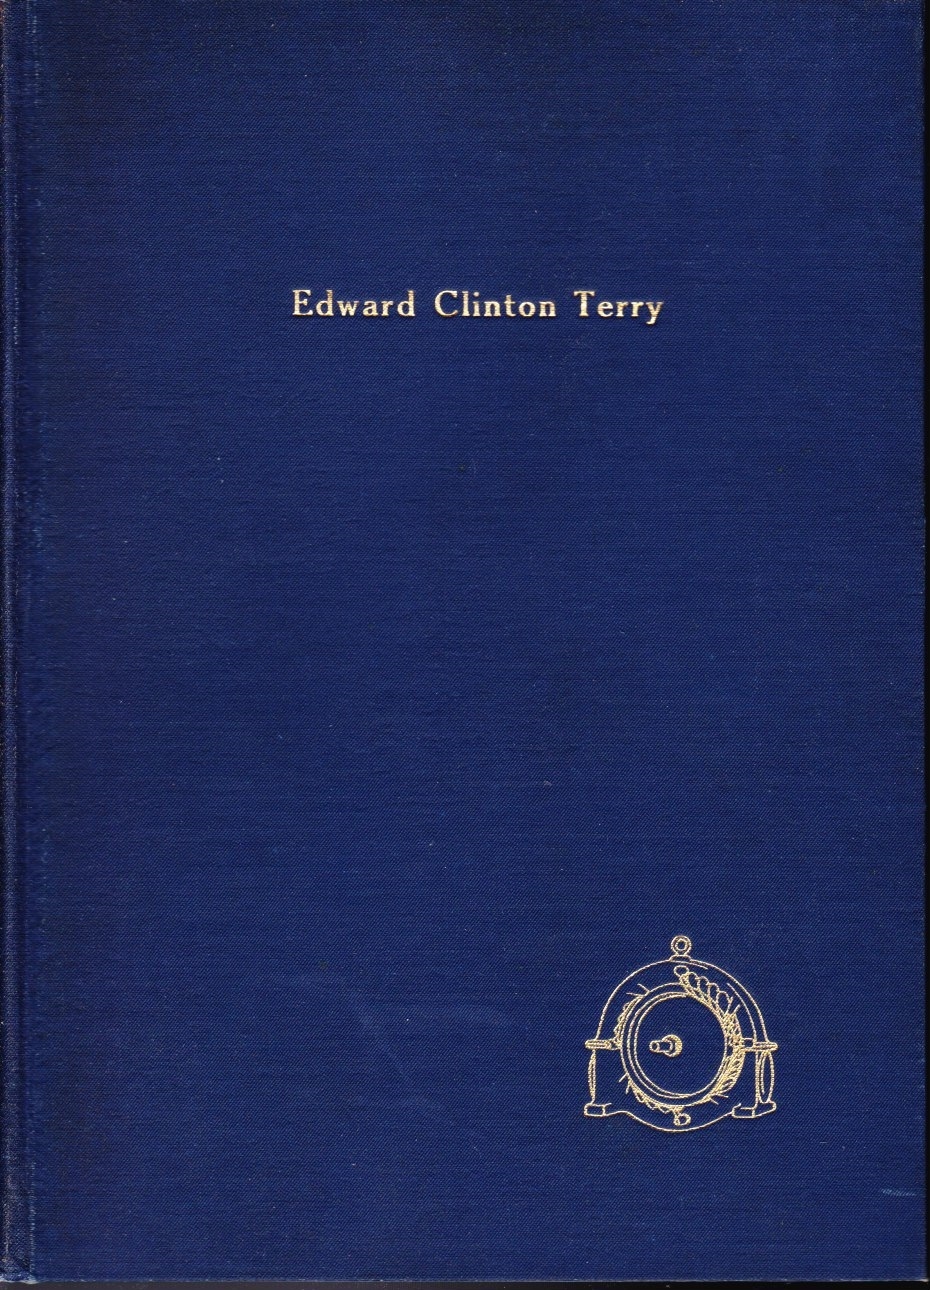 Edward Clinton Terry, PH. B.  Member of American Society of Civil Engineers